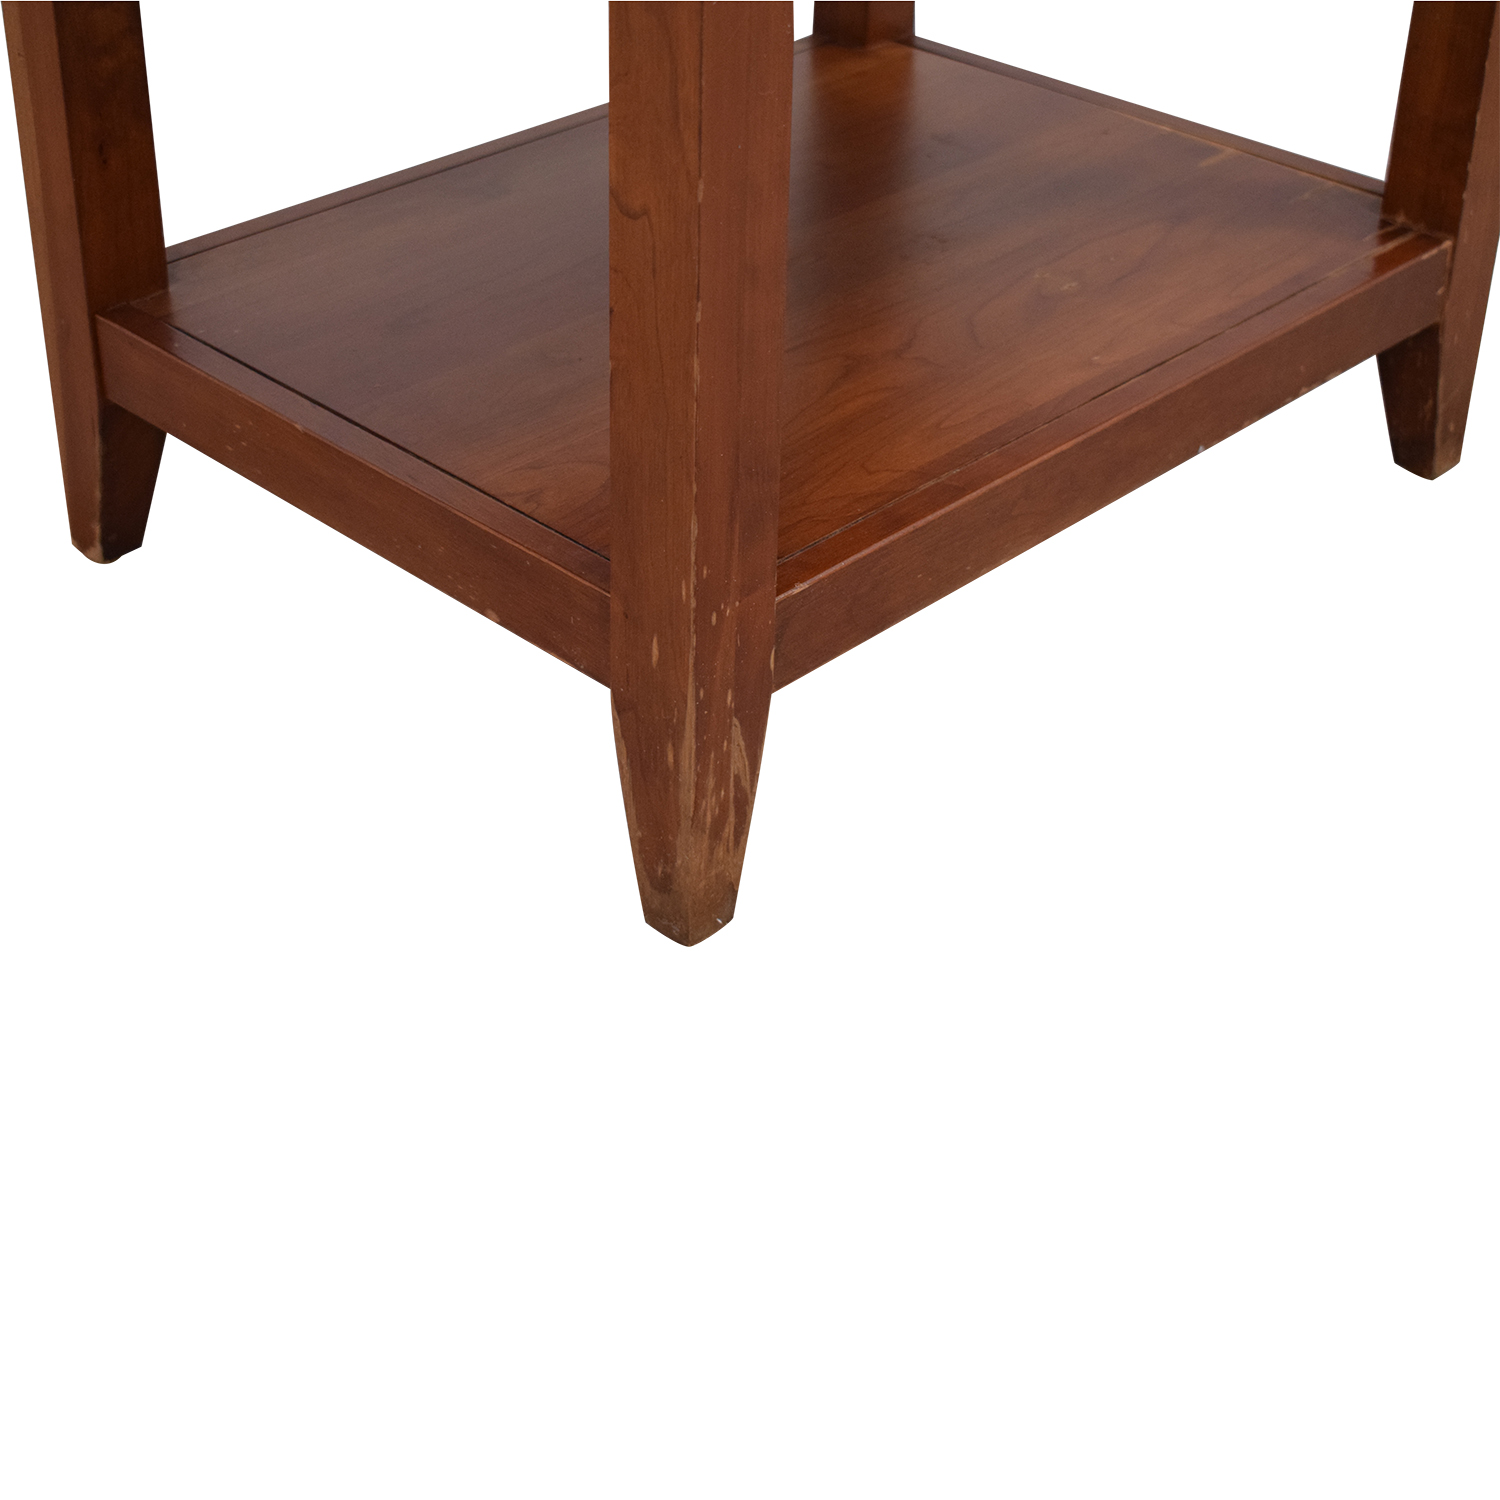 buy Ethan Allen Ethan Allen Tower Shelf online